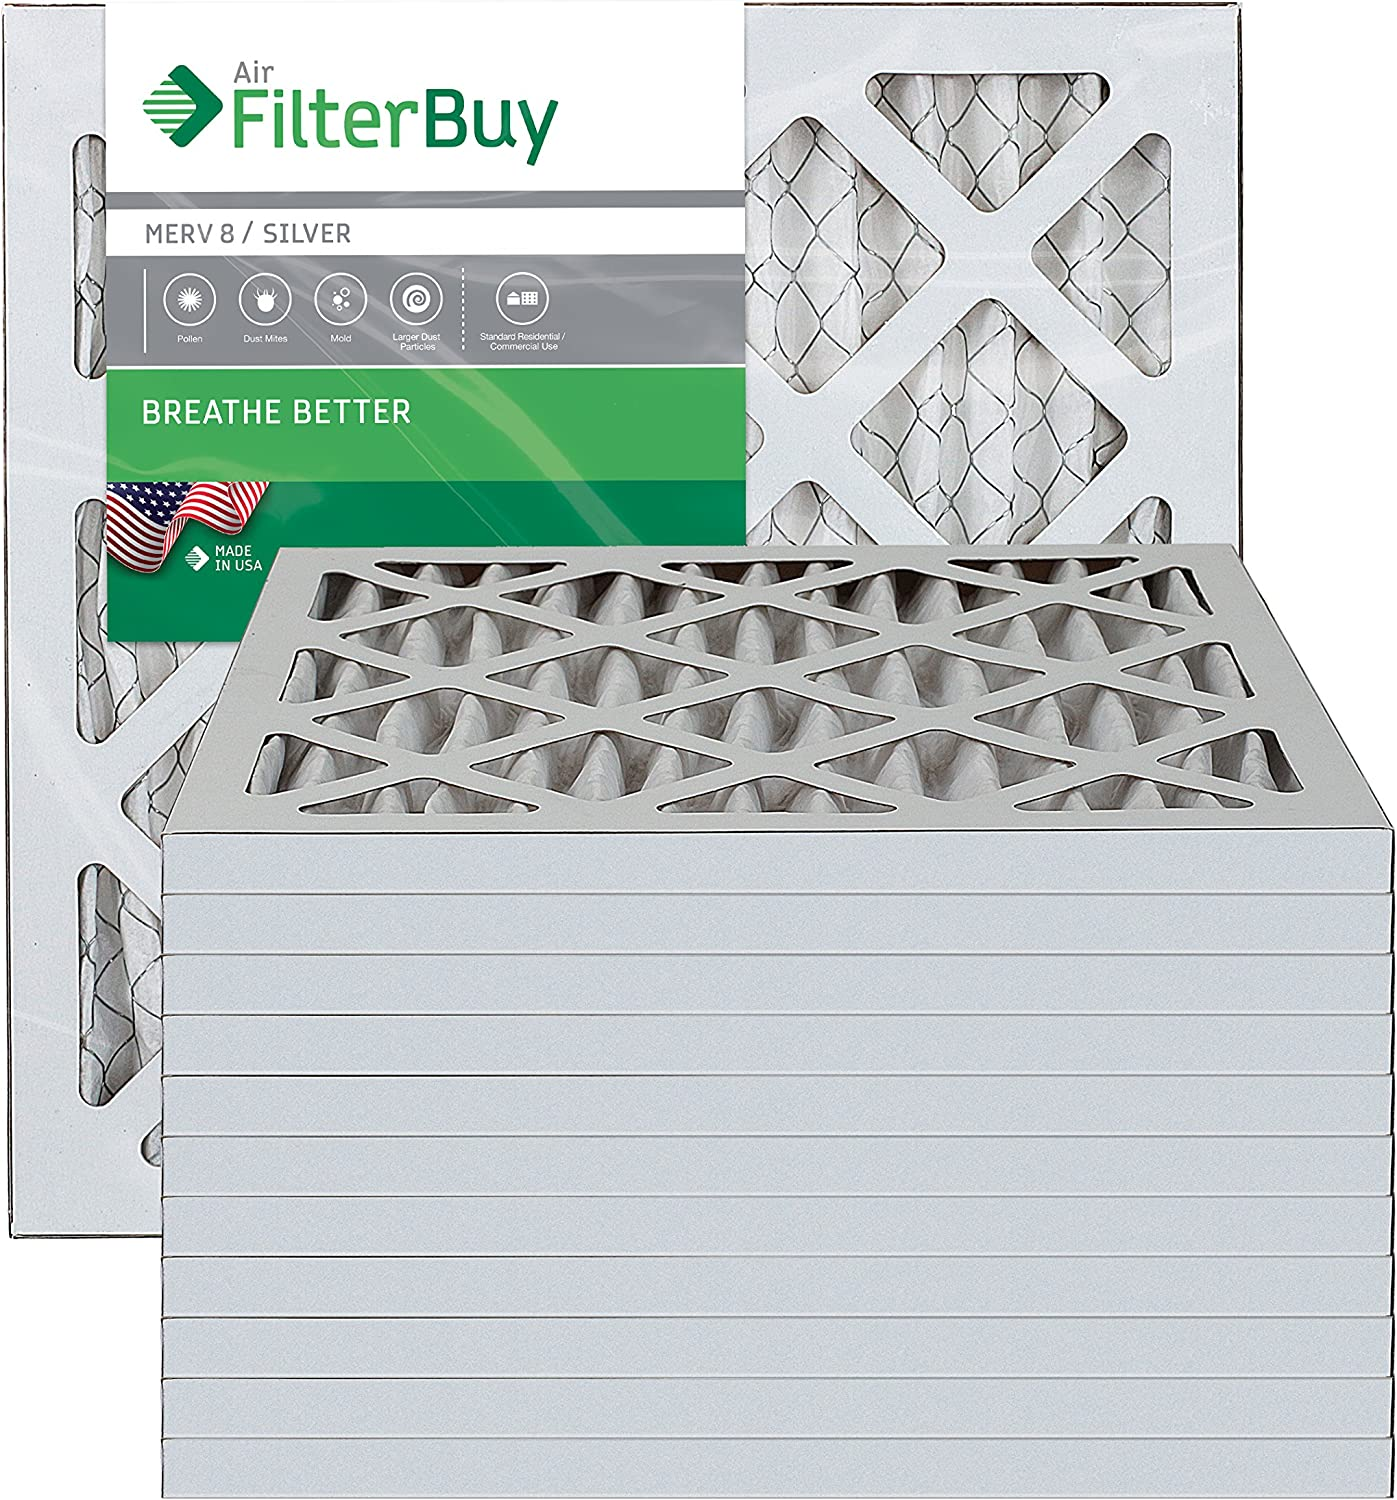 FILTERBUY 16X16X1 MERV 8 PLEATED AC FURNACE AIR FILTER (PACK OF 12 FILTERS) 16X16X1 - SILVER